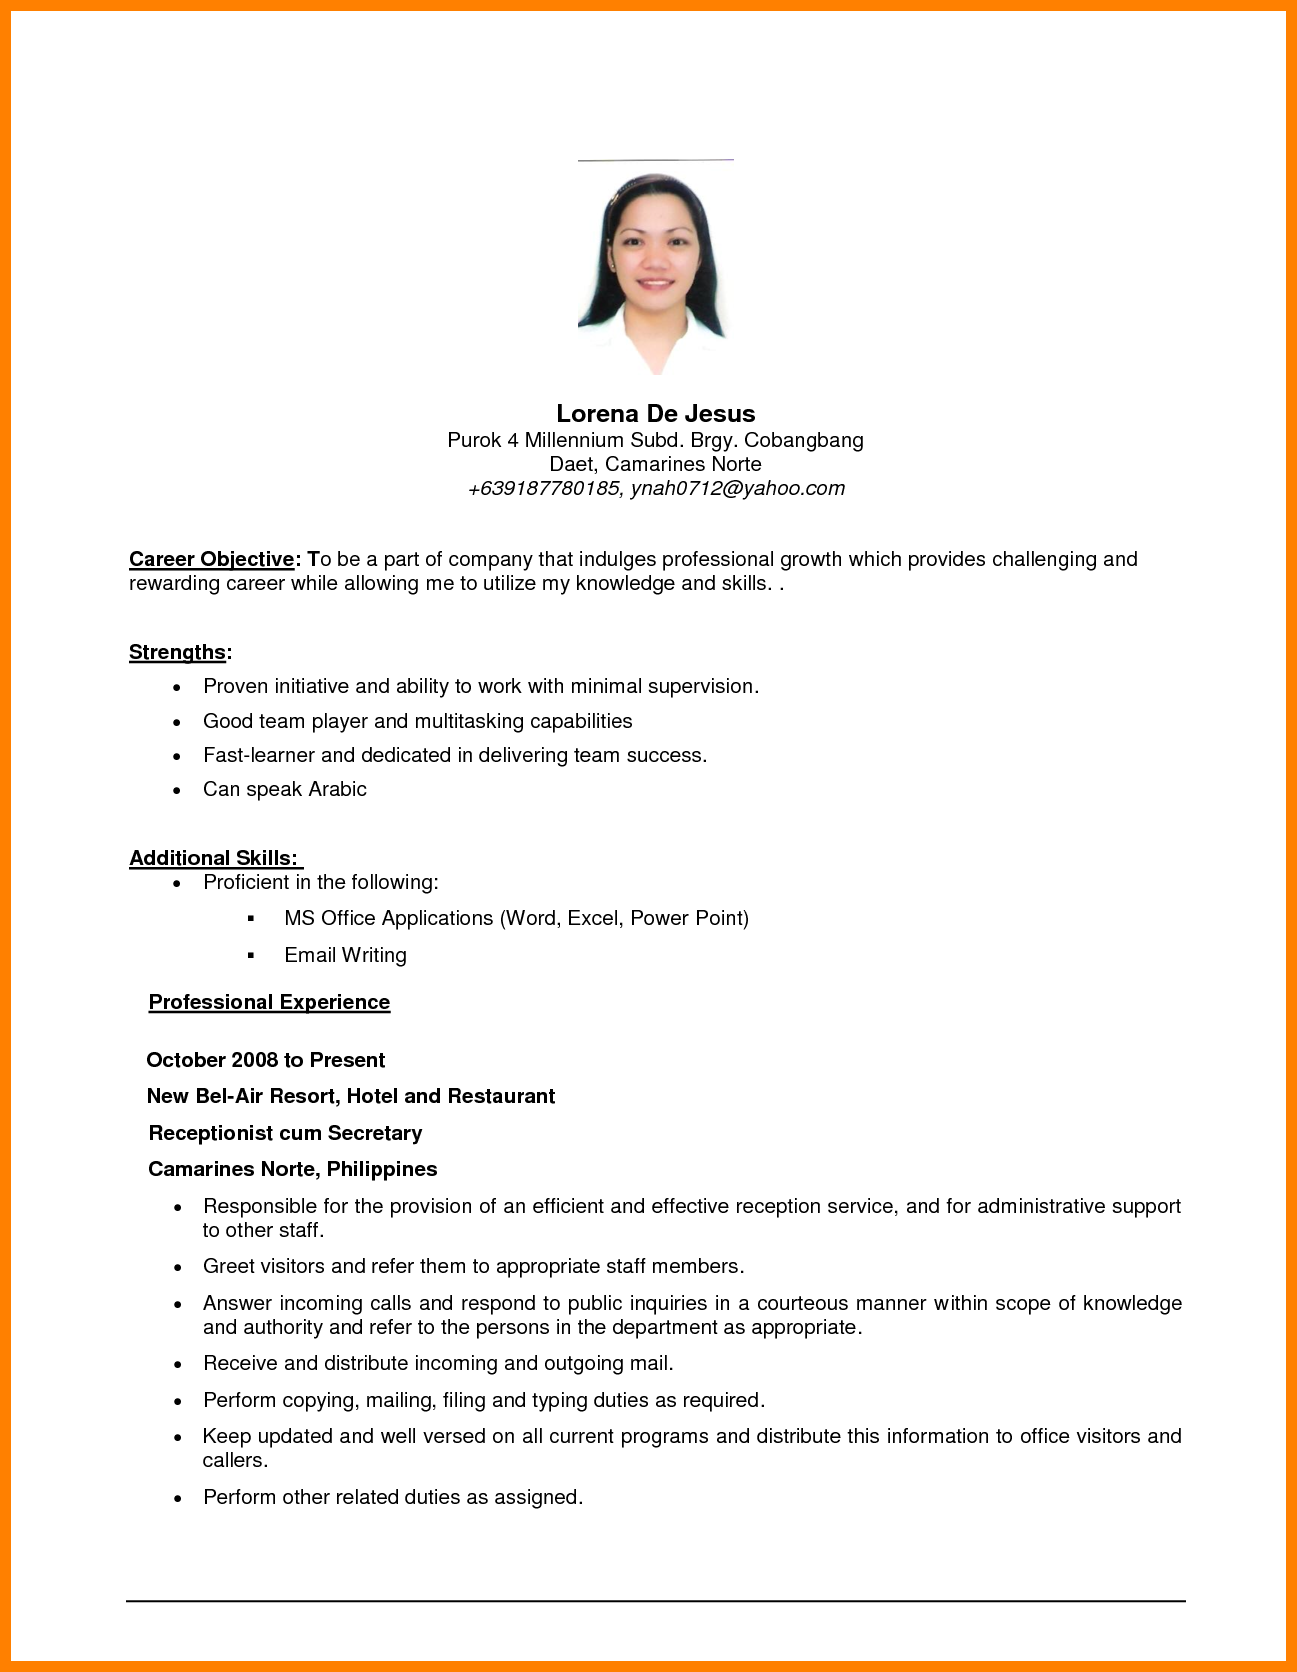 Sample Resume Objectives Resume Objective Sample Computer Skills Examples For Example Your